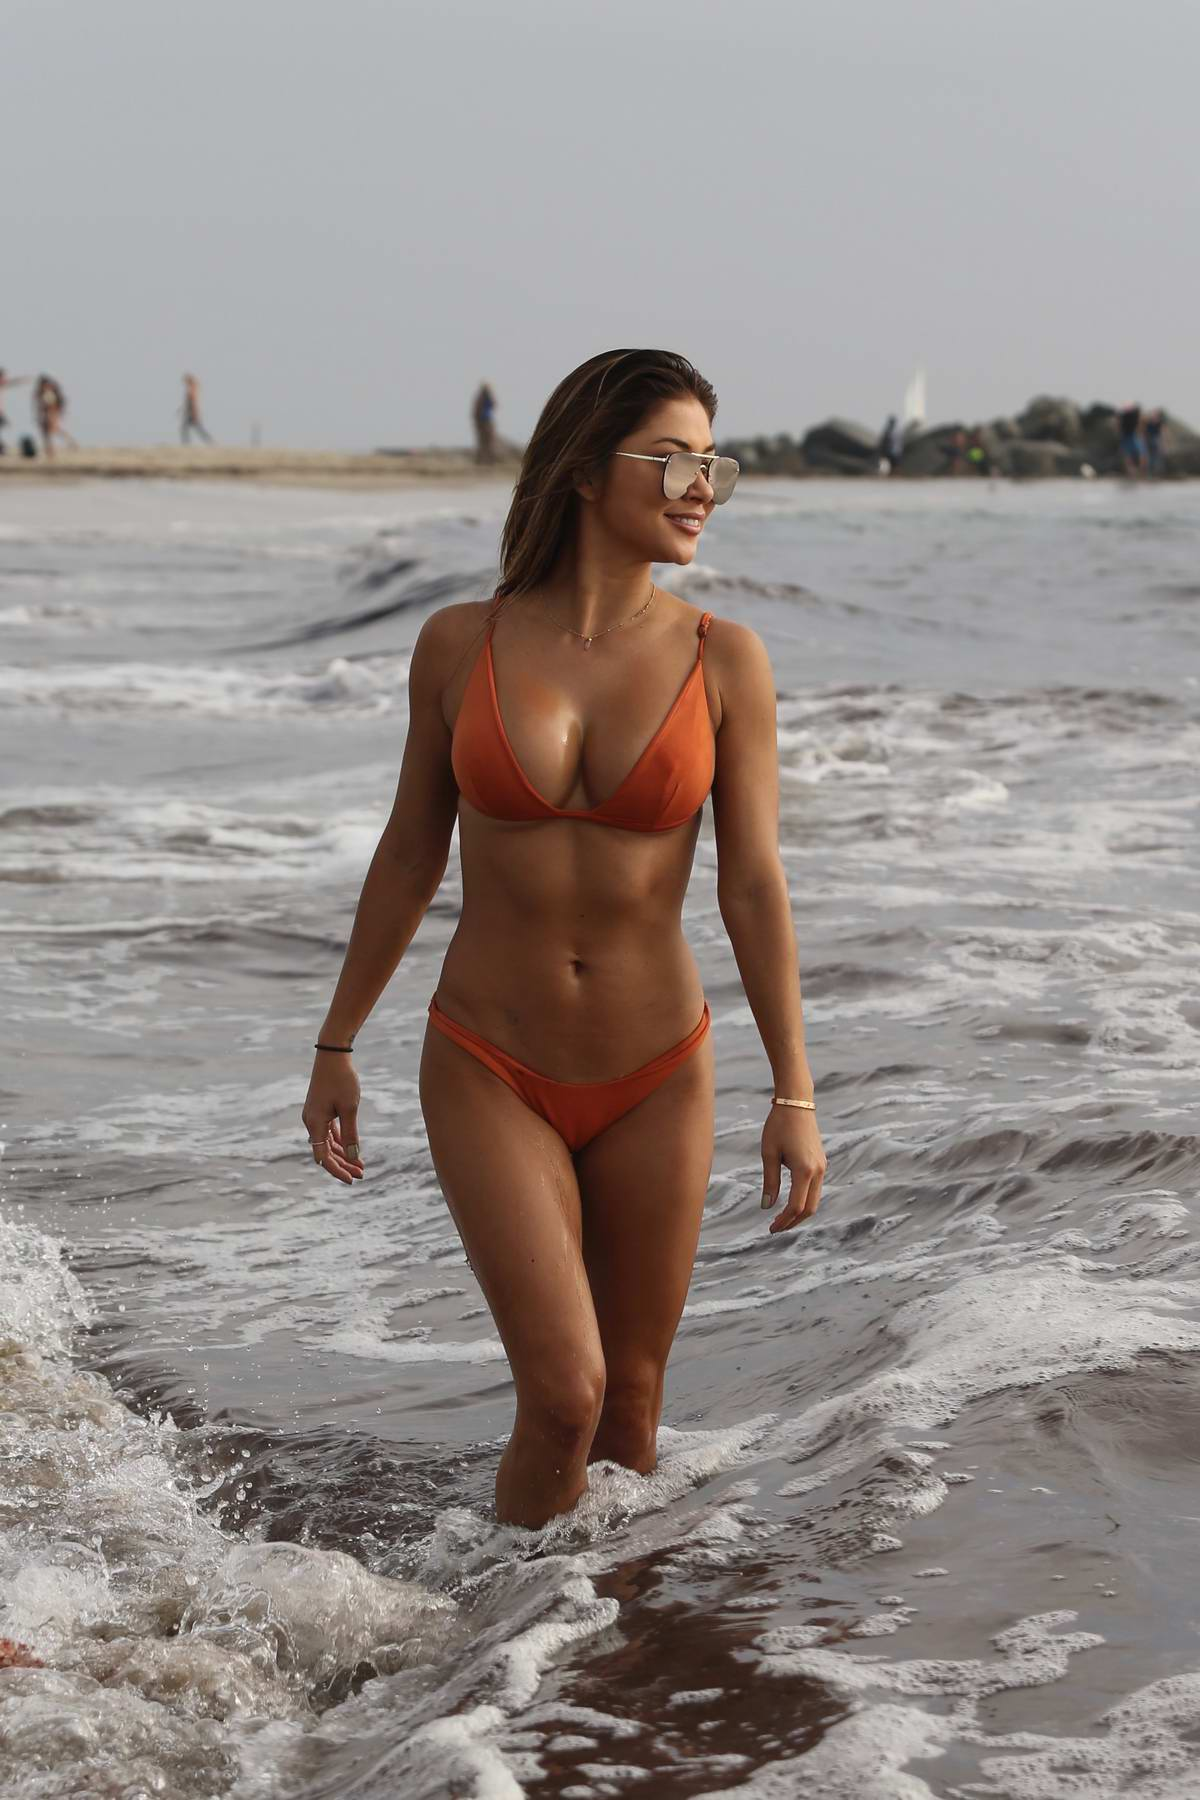 Arianny Celeste in an orange bikini spotted at the beach in Venice, California